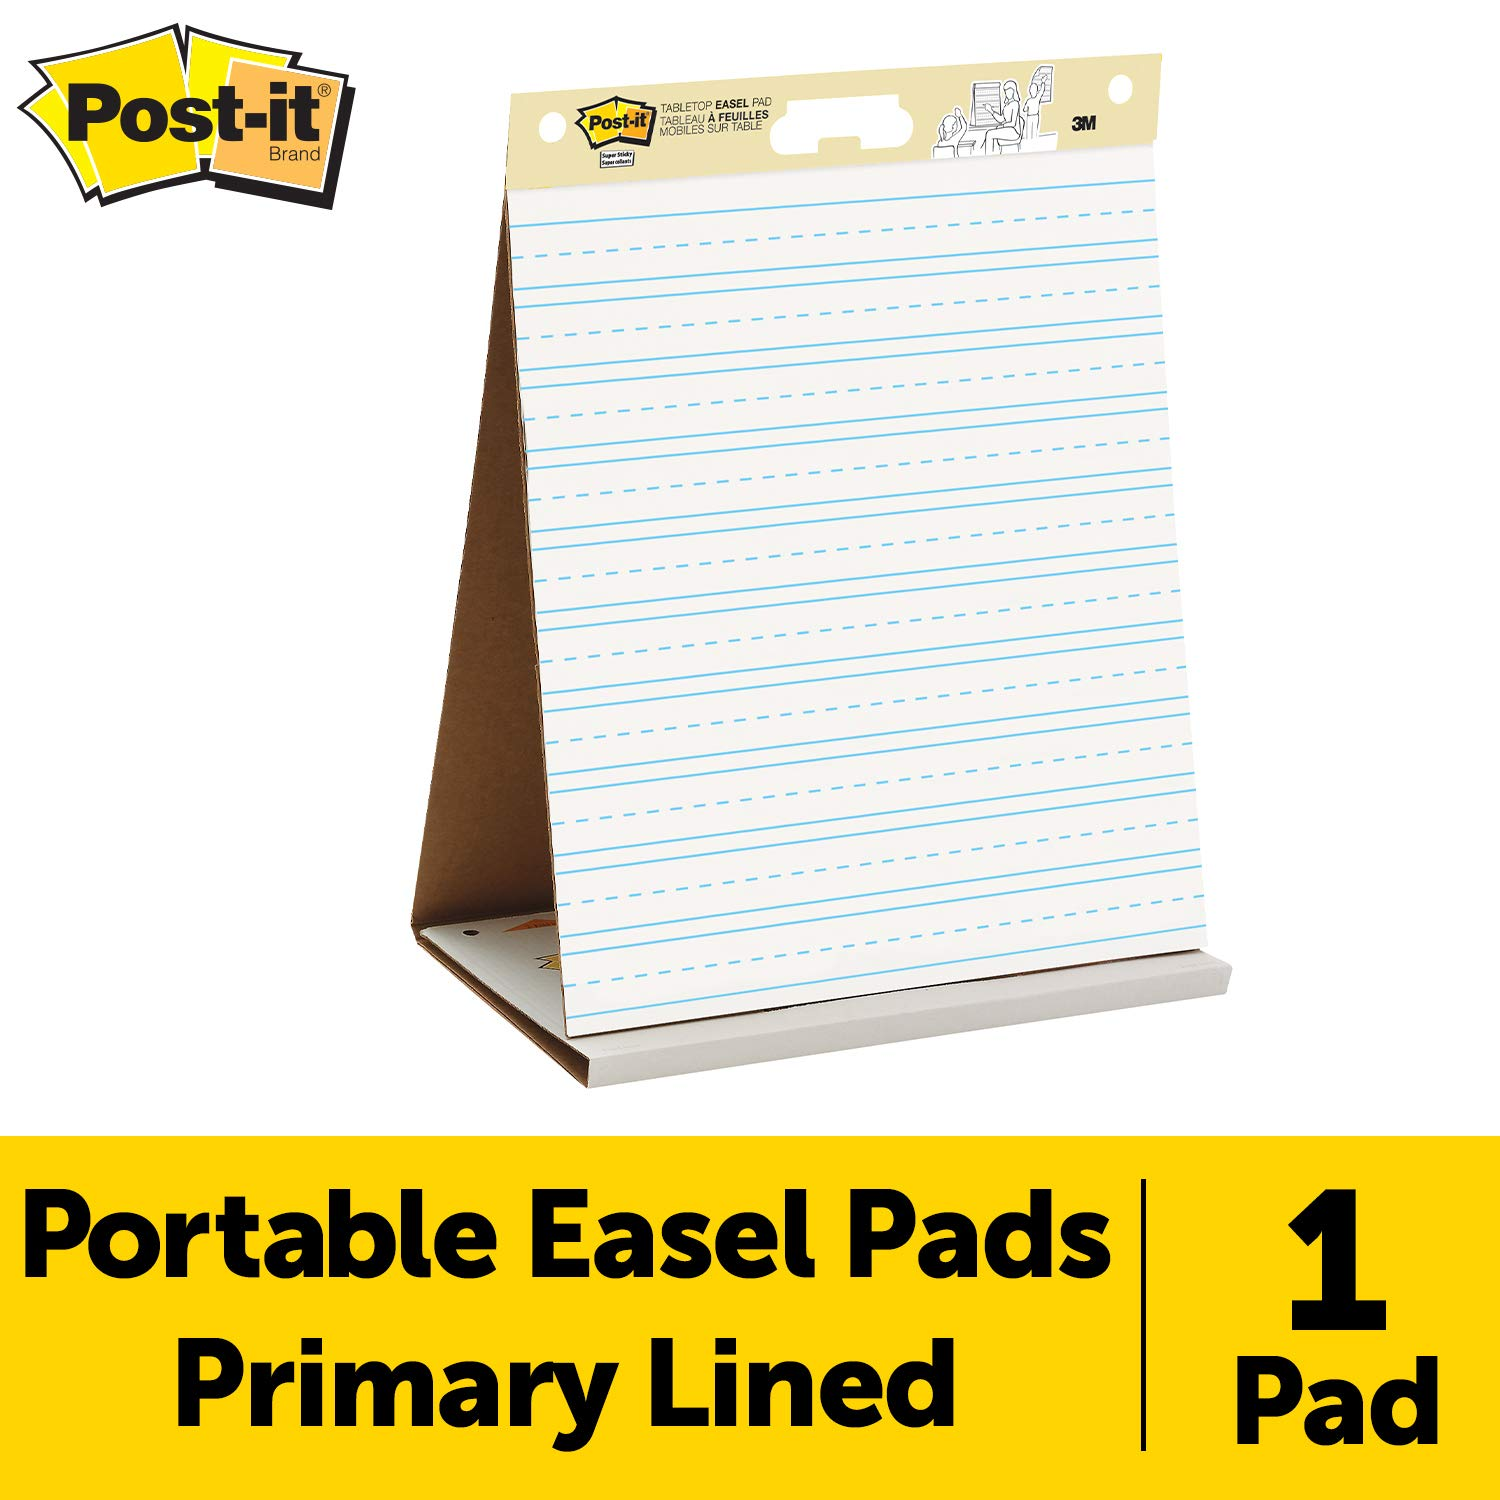 Post-it Super Sticky Tabletop Easel Pad, 20 x 23 Inches, 20 Sheets/Pad, 1 Pad (563PRL), Portable White Premium Self Stick Flip Chart Paper with Primary Lines, School Paper, Built-in Easel Stand by Post-it